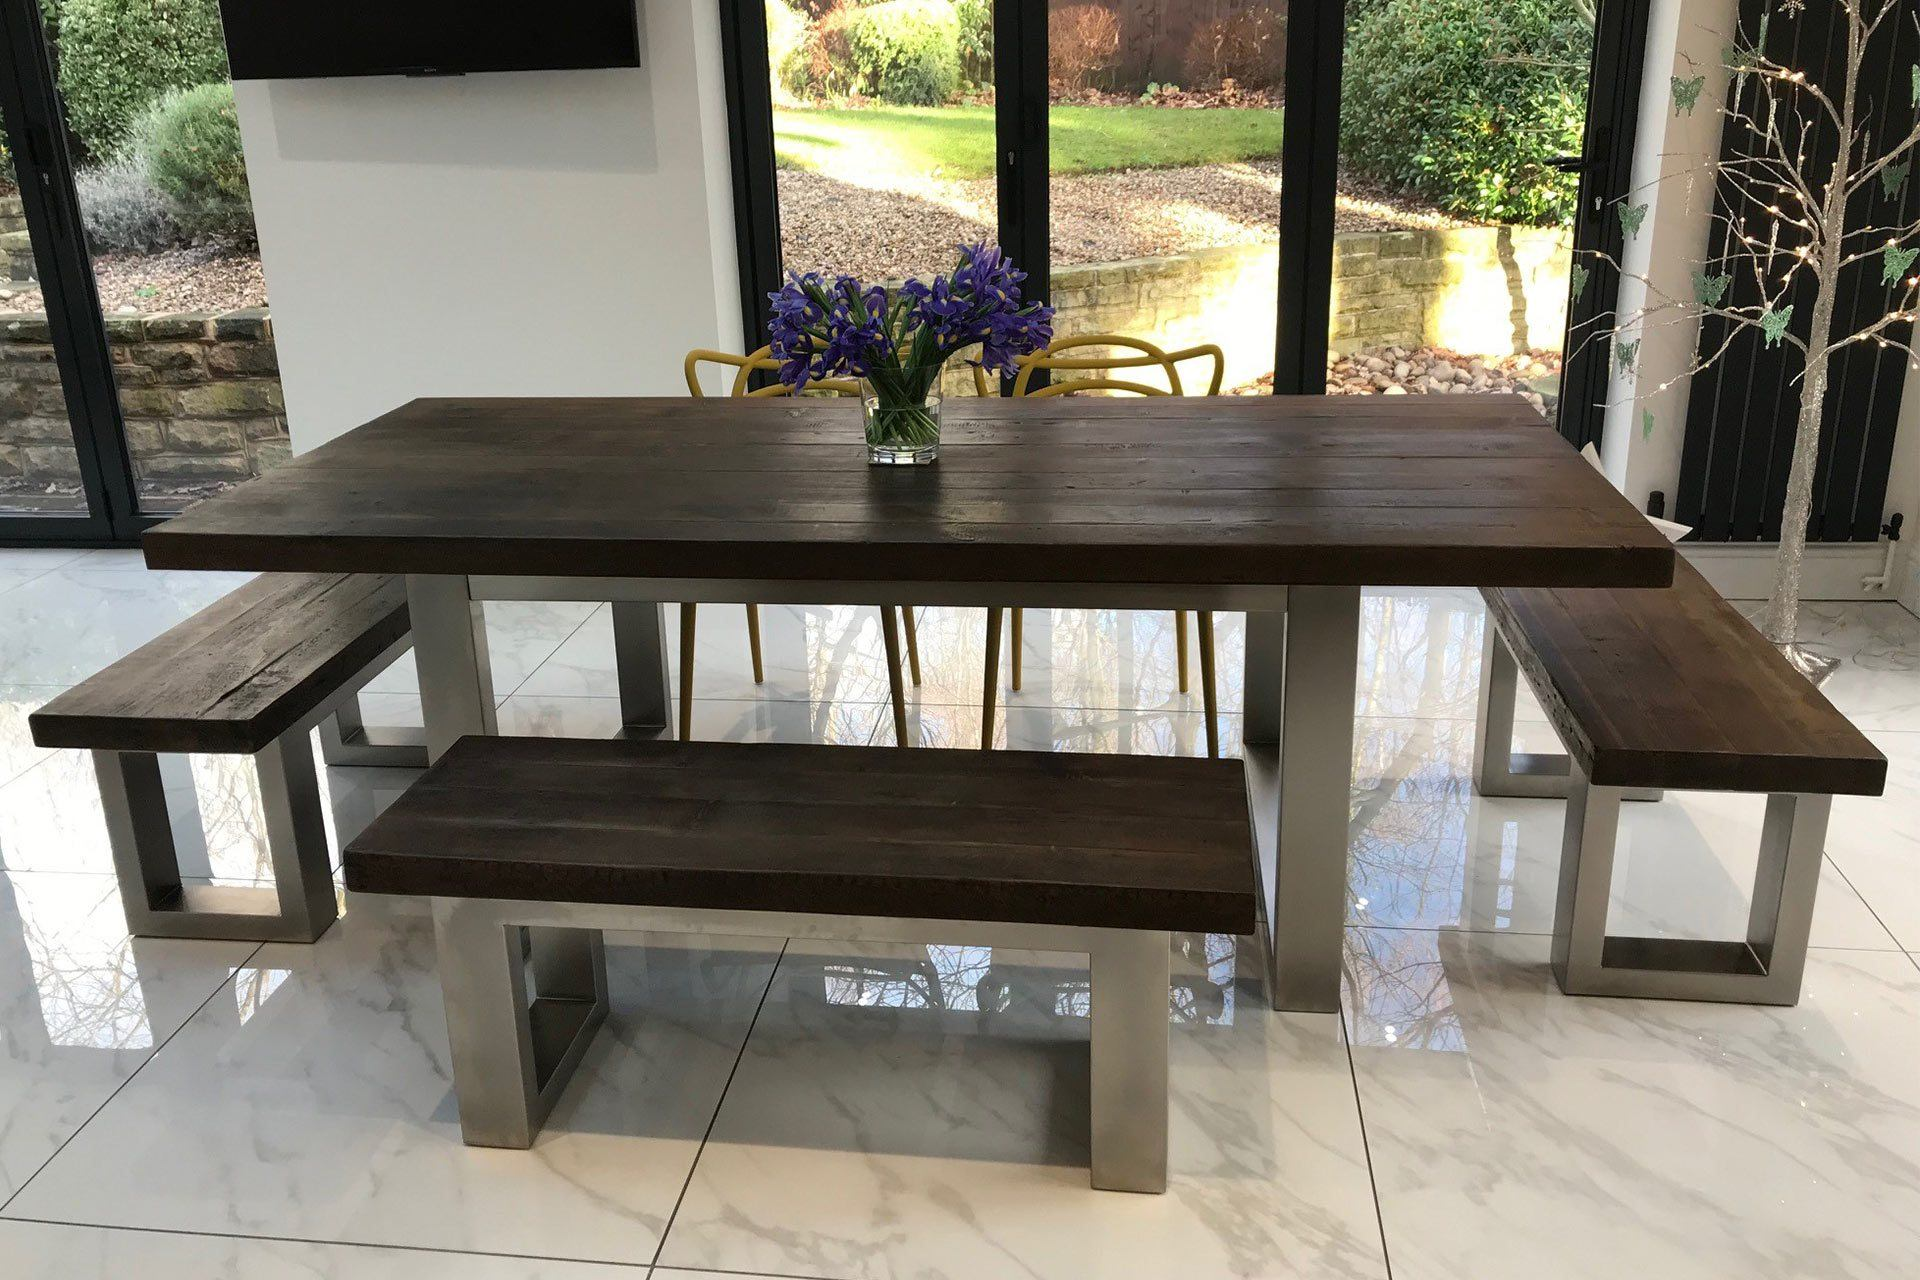 Classic 223cm Long Overhang Table With End Benches & Side Bench (Sold Separately)